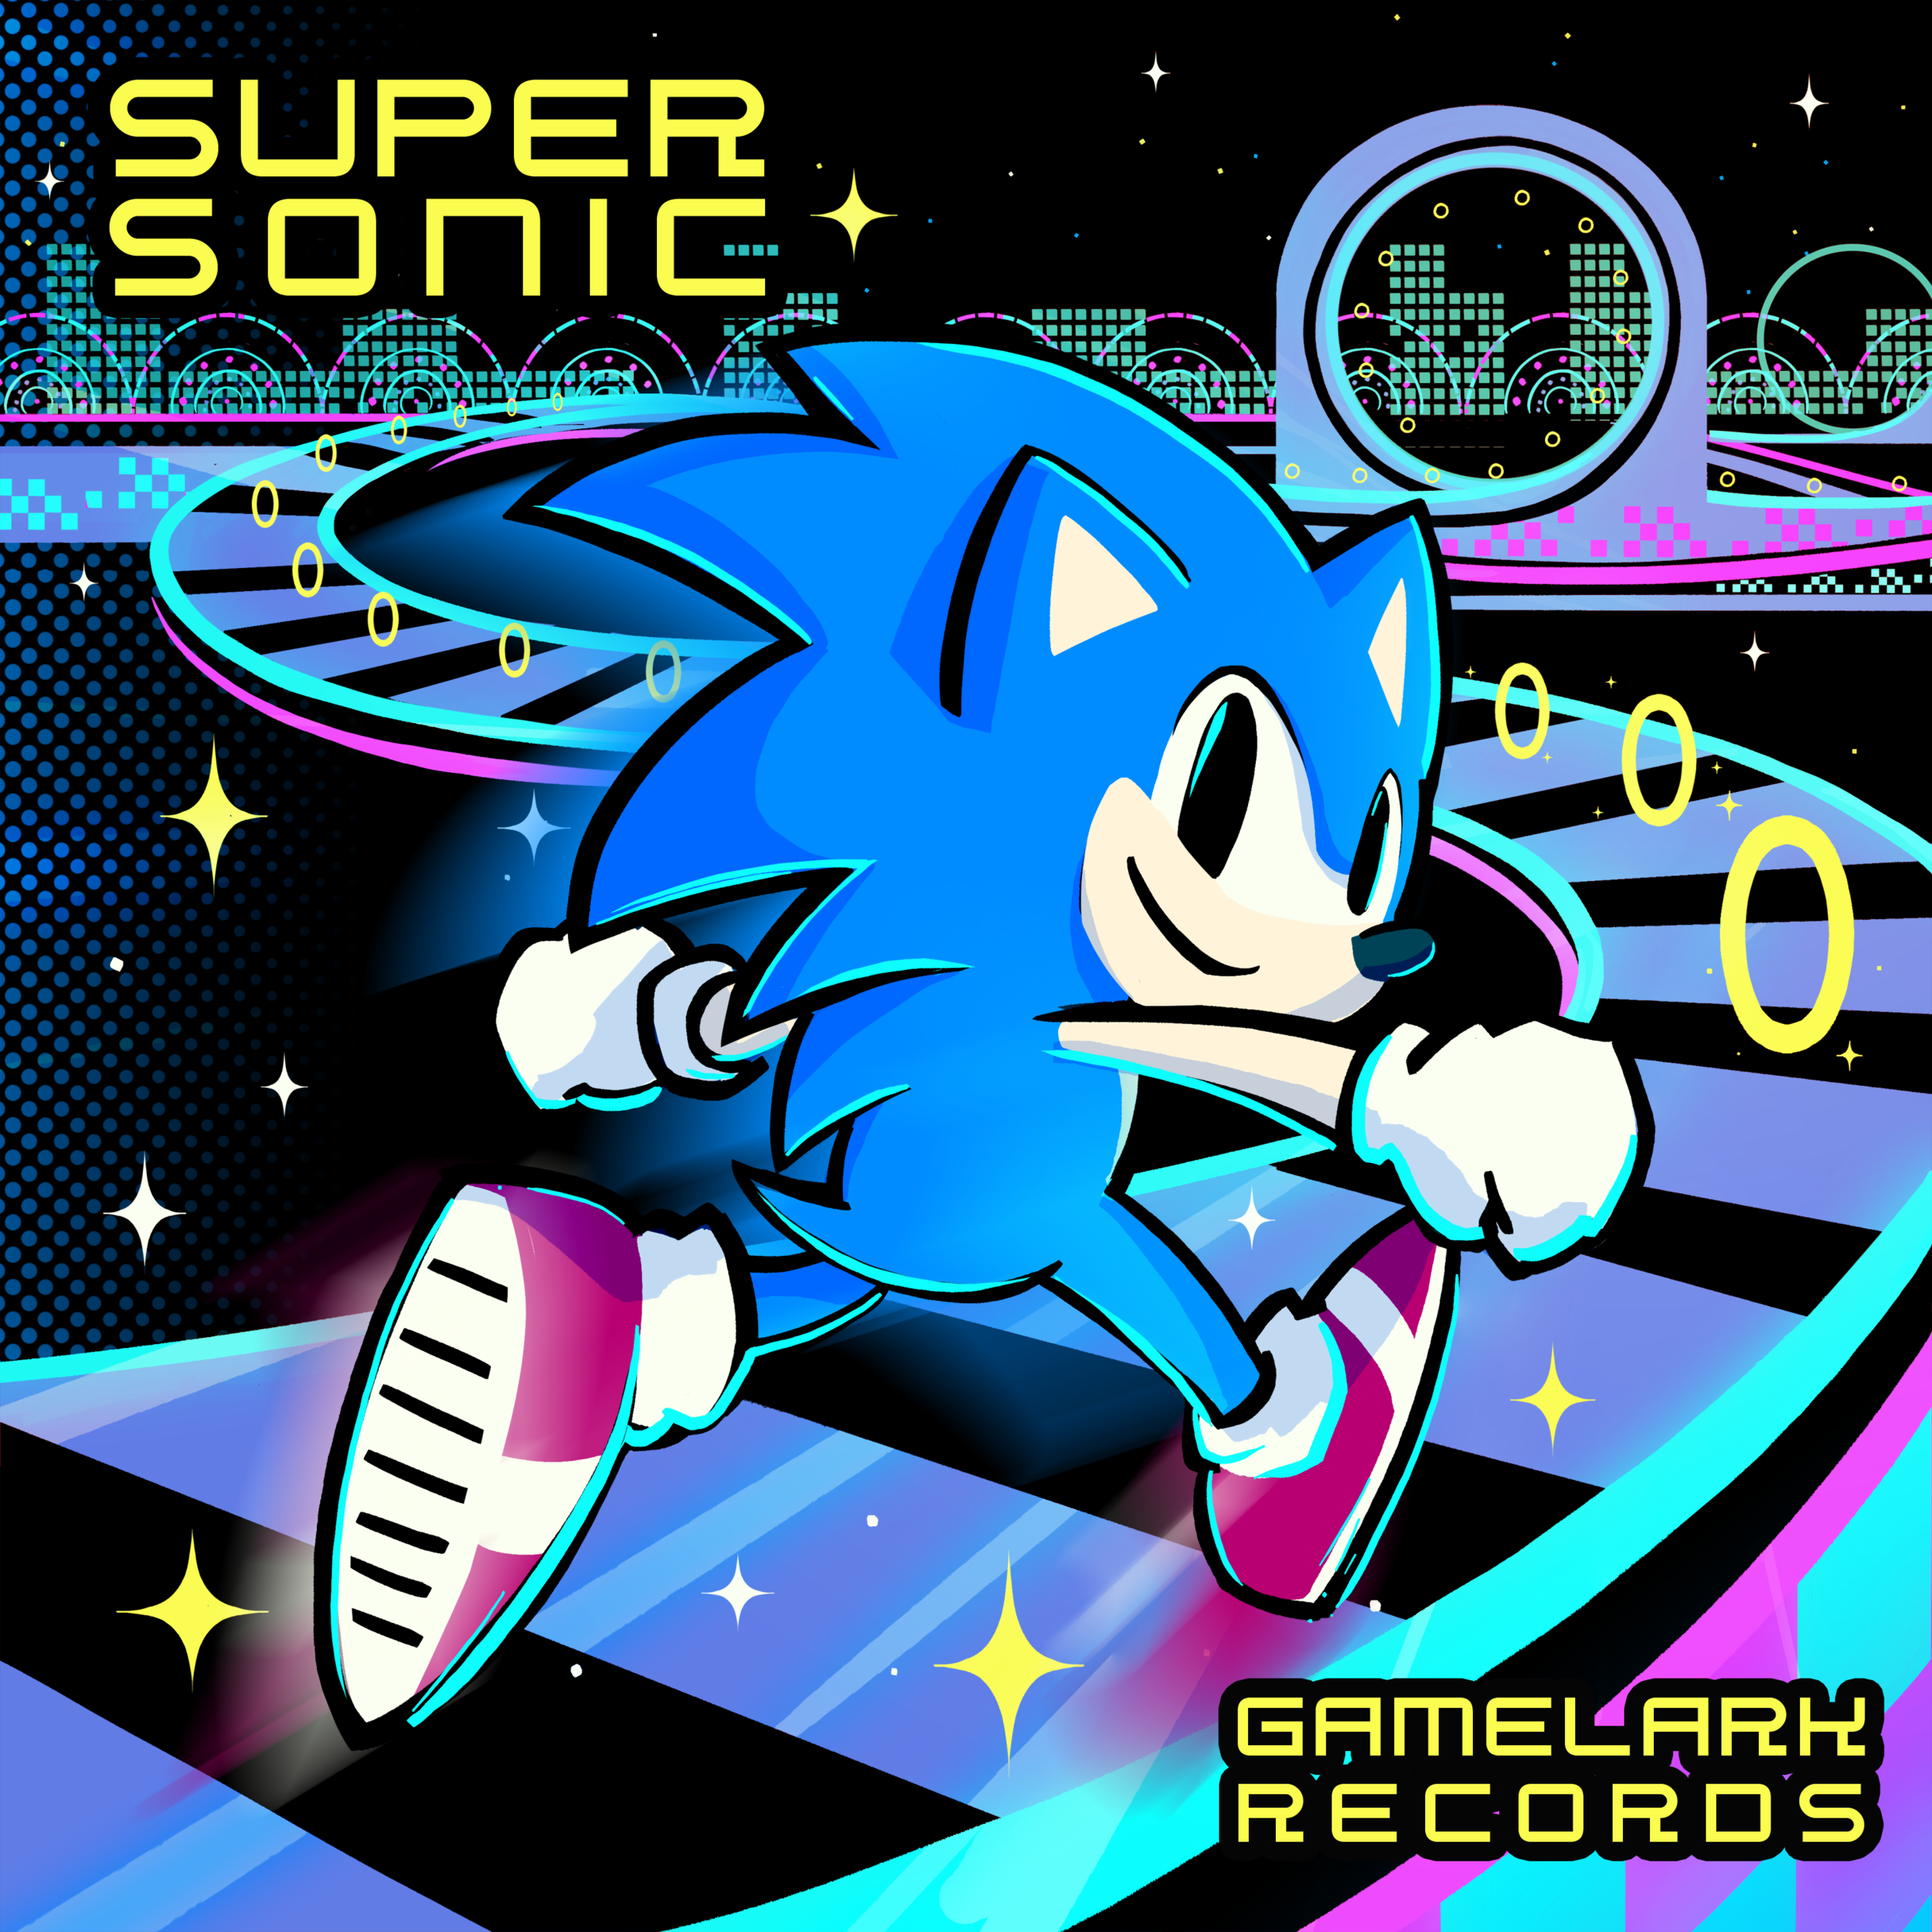 GameLark SUPERSONIC